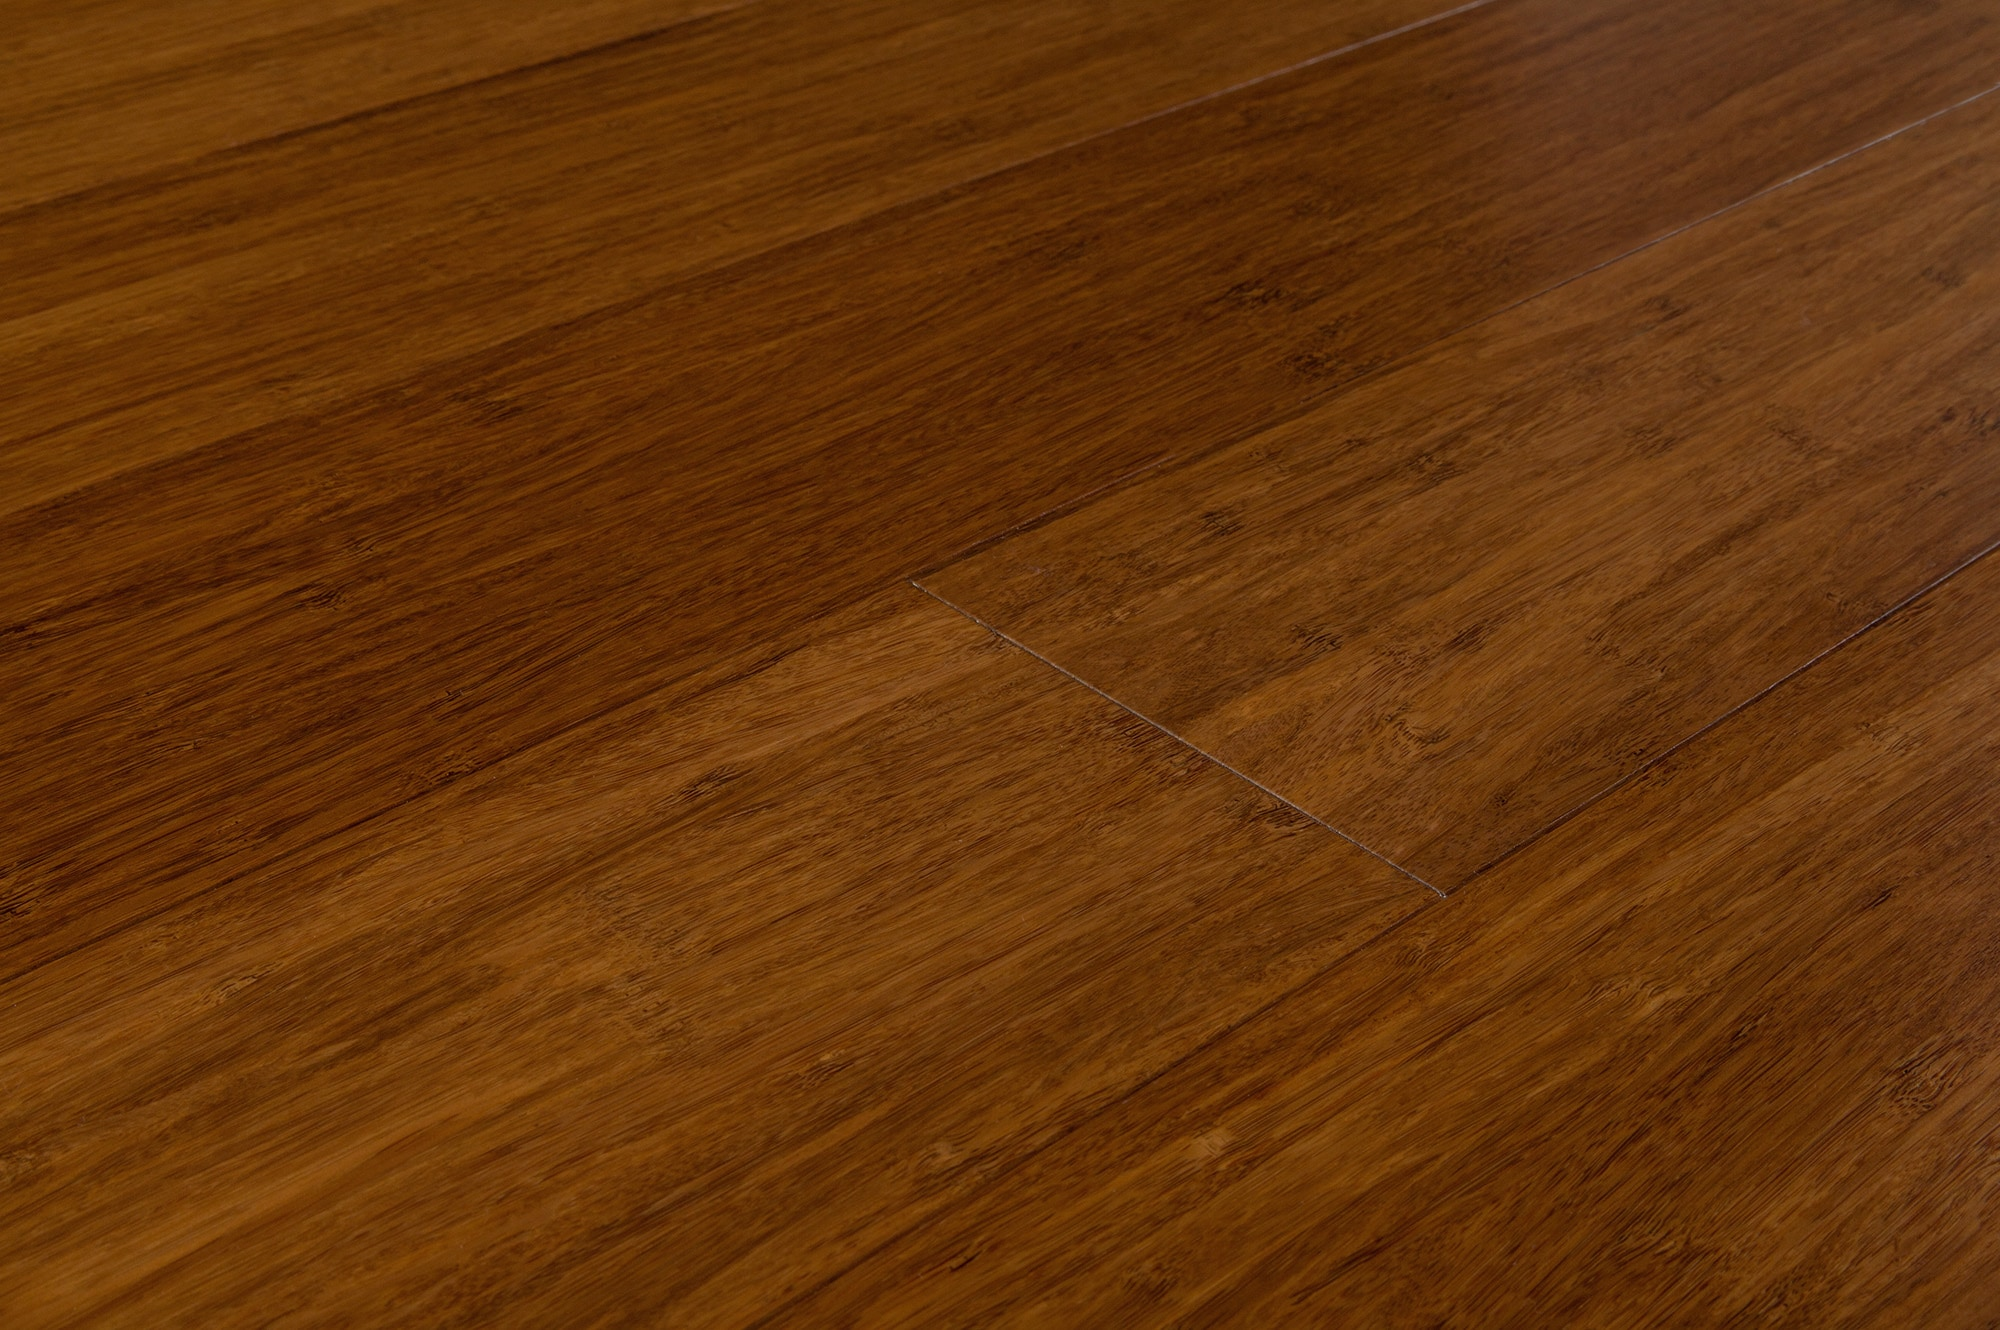 Bamboo engineered hardwood flooring tiger strand woven for Strand woven bamboo flooring pros and cons